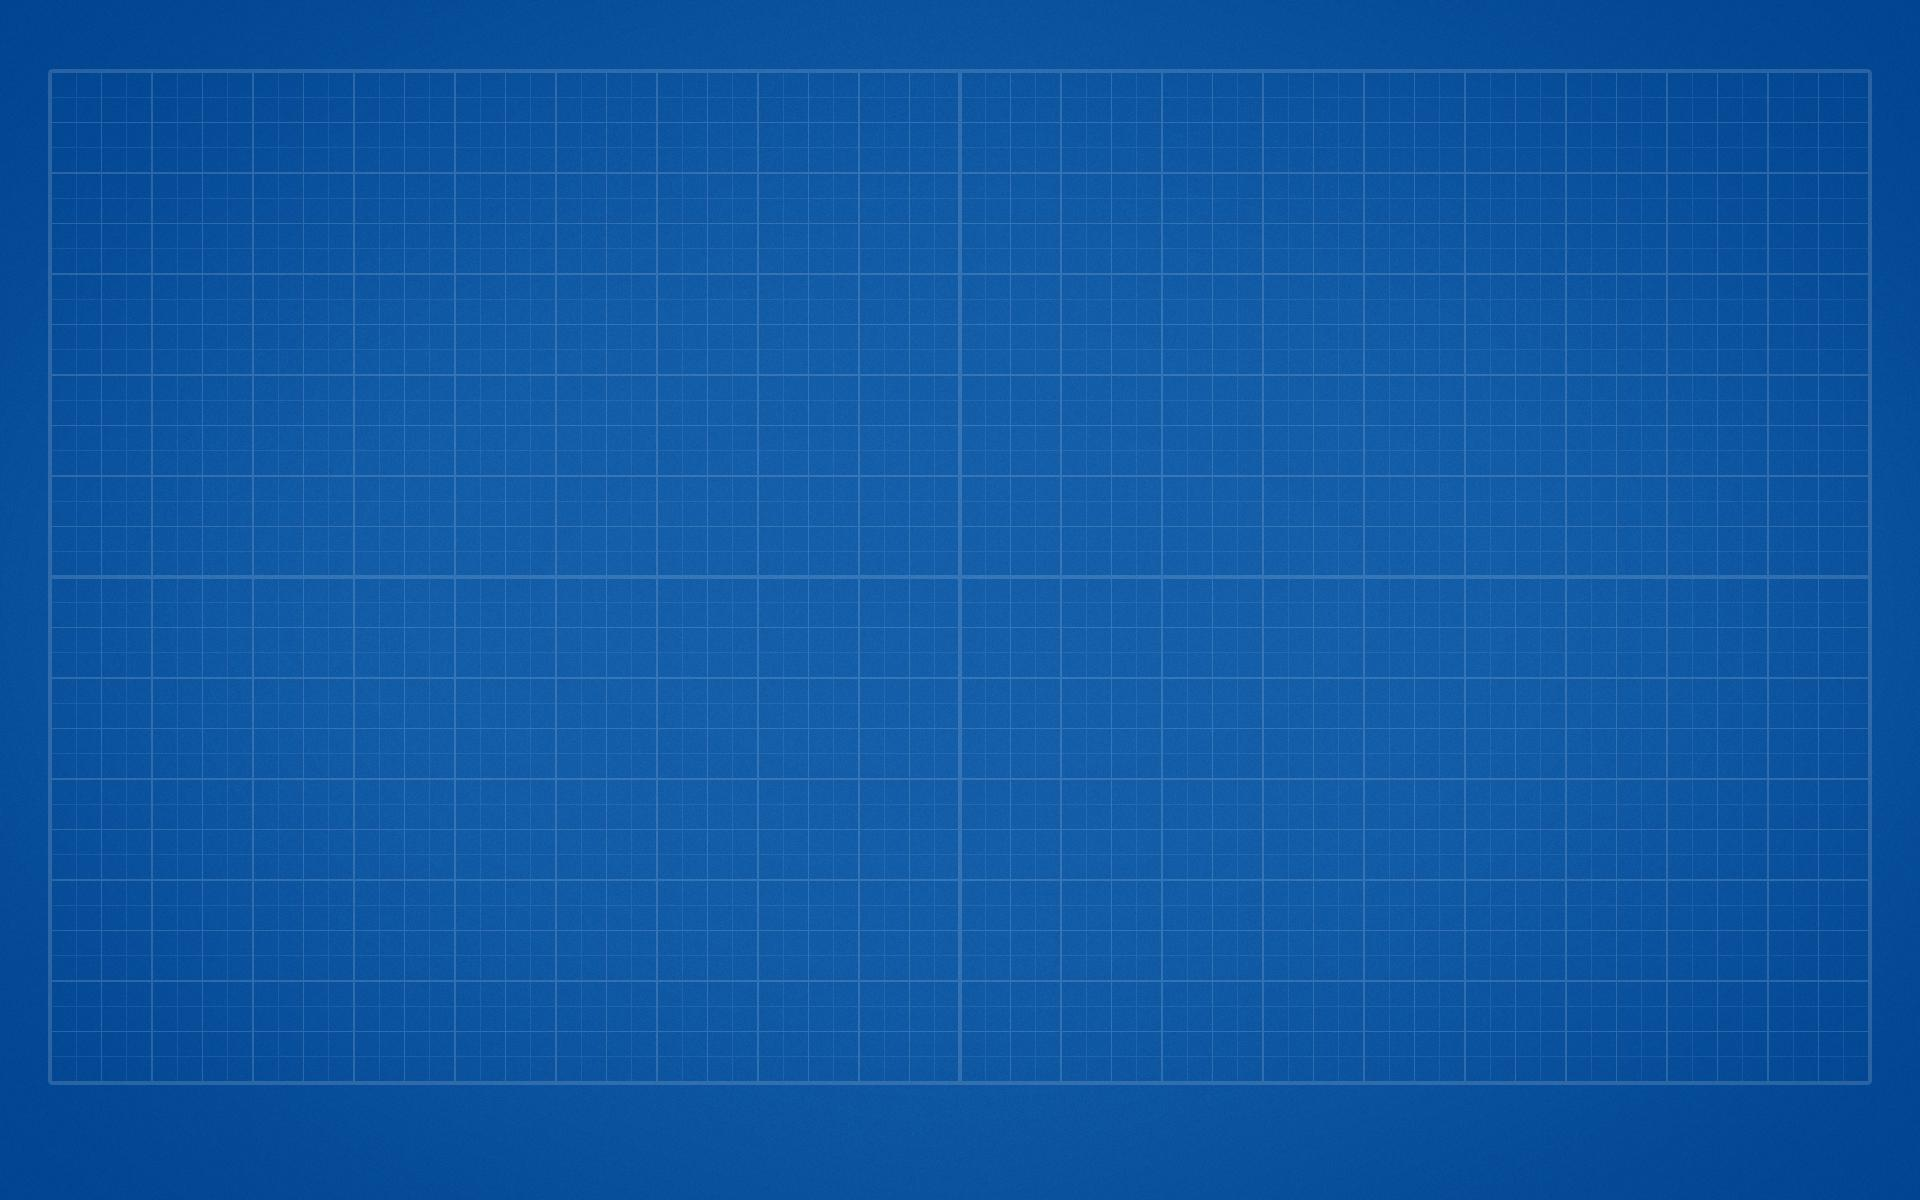 Light Striped Blue Print Wallpaper Backgrounds For Powerpoint